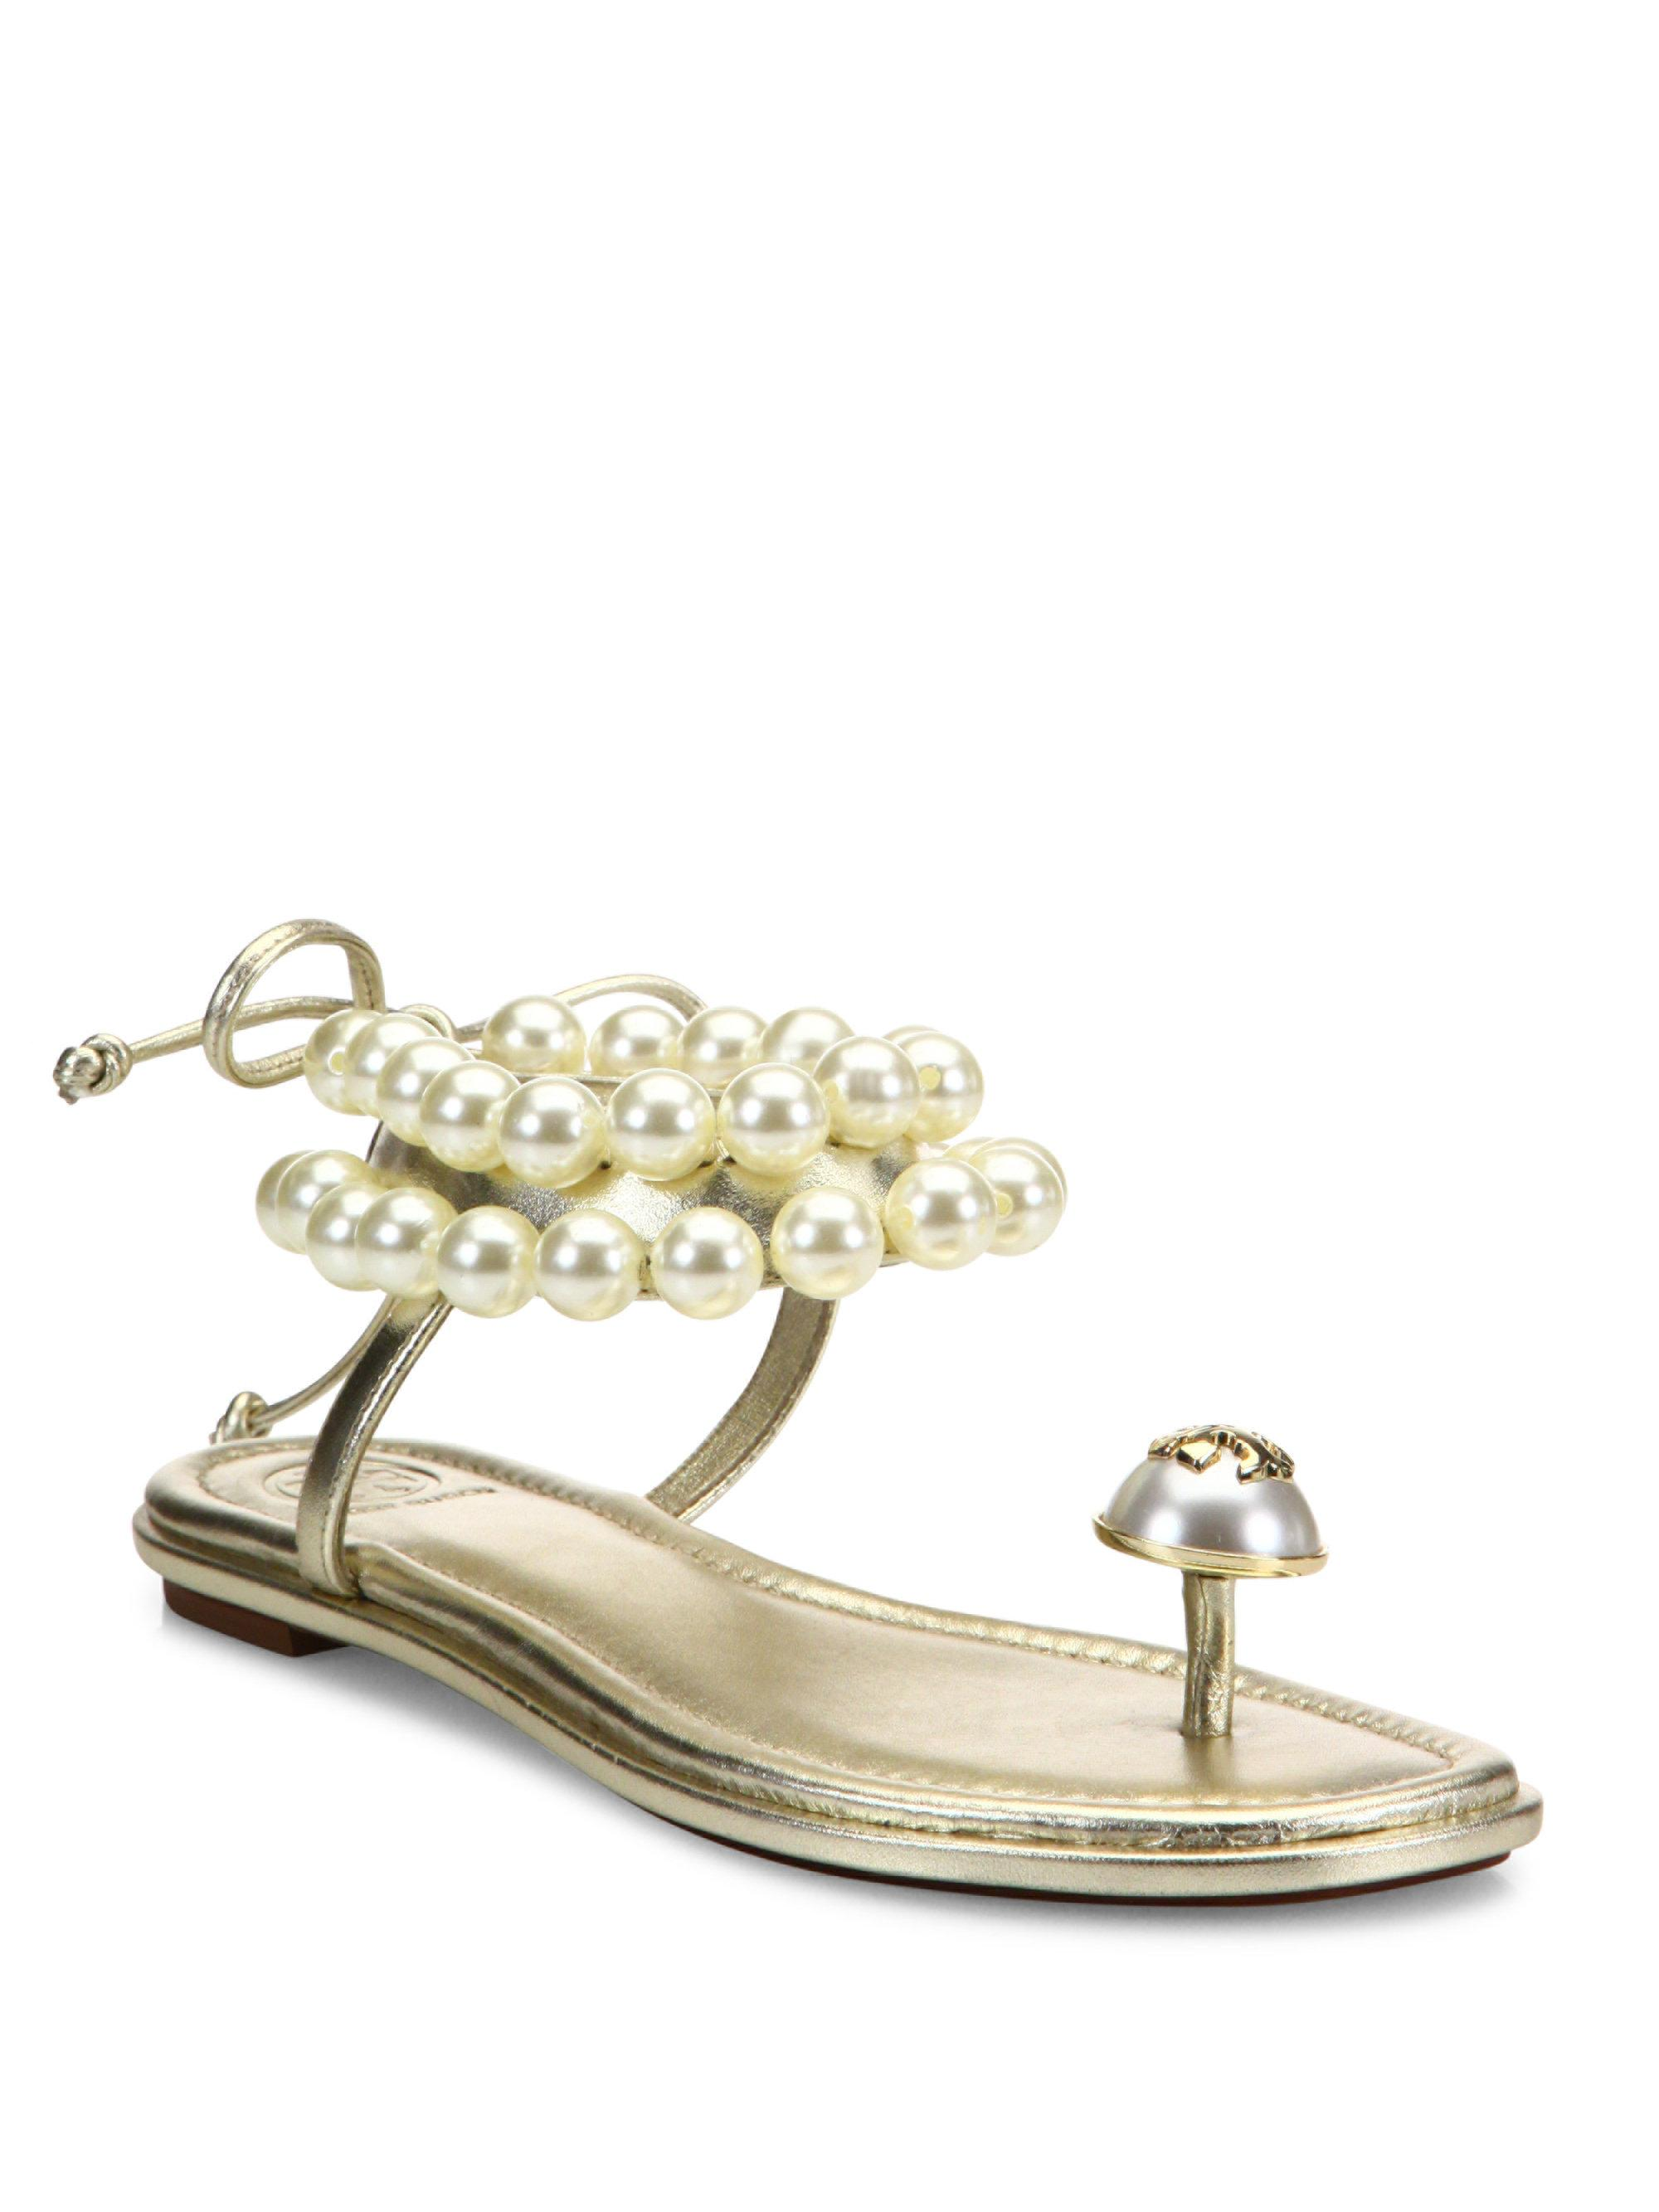 e8eb1fce69f4 Lyst - Tory Burch Melody Beaded Leather Ankle Tie Sandals in Metallic